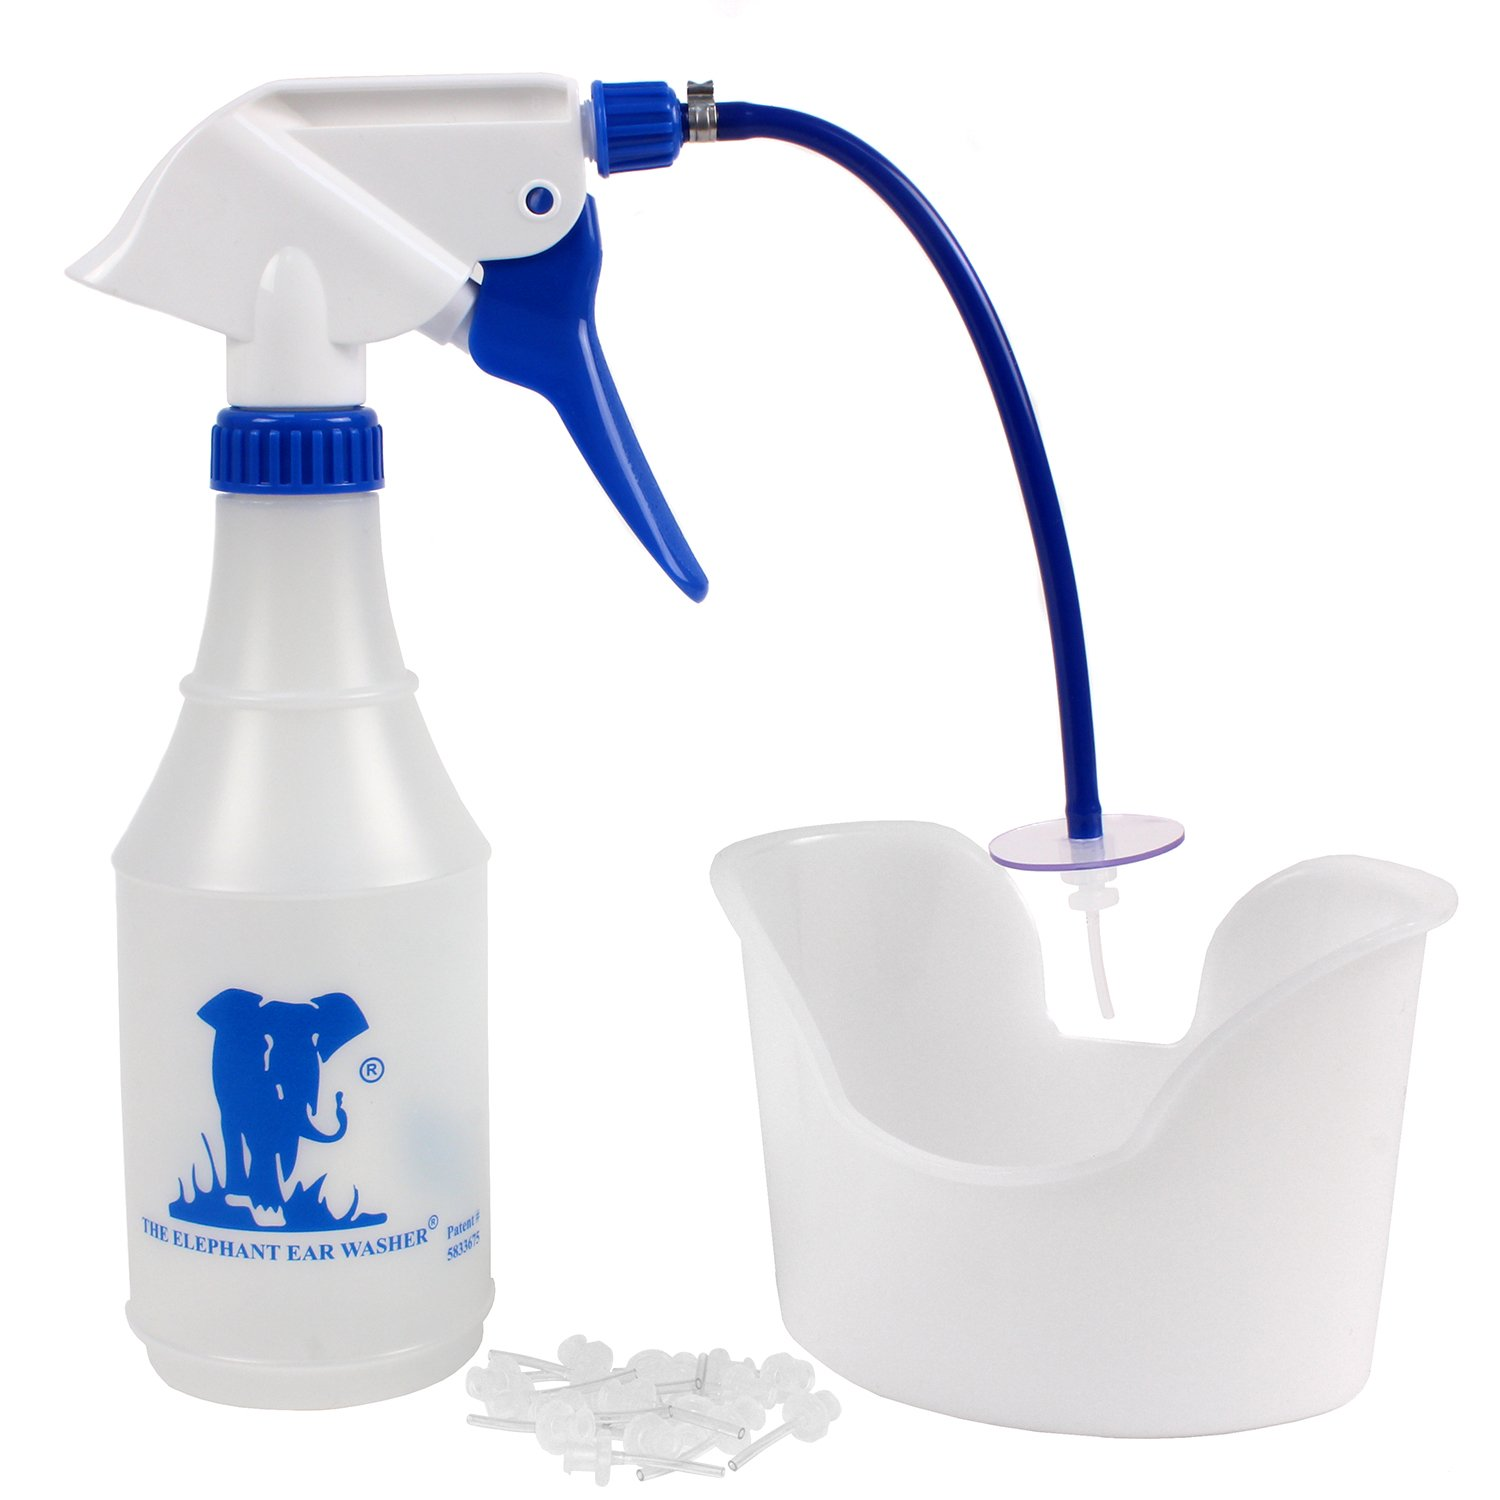 Doctor Easy Elephant Ear Washer Bottle System - Ear Wax Remover with Basin and 20 Extra Disposable Tips by Doctor Easy Medical Products